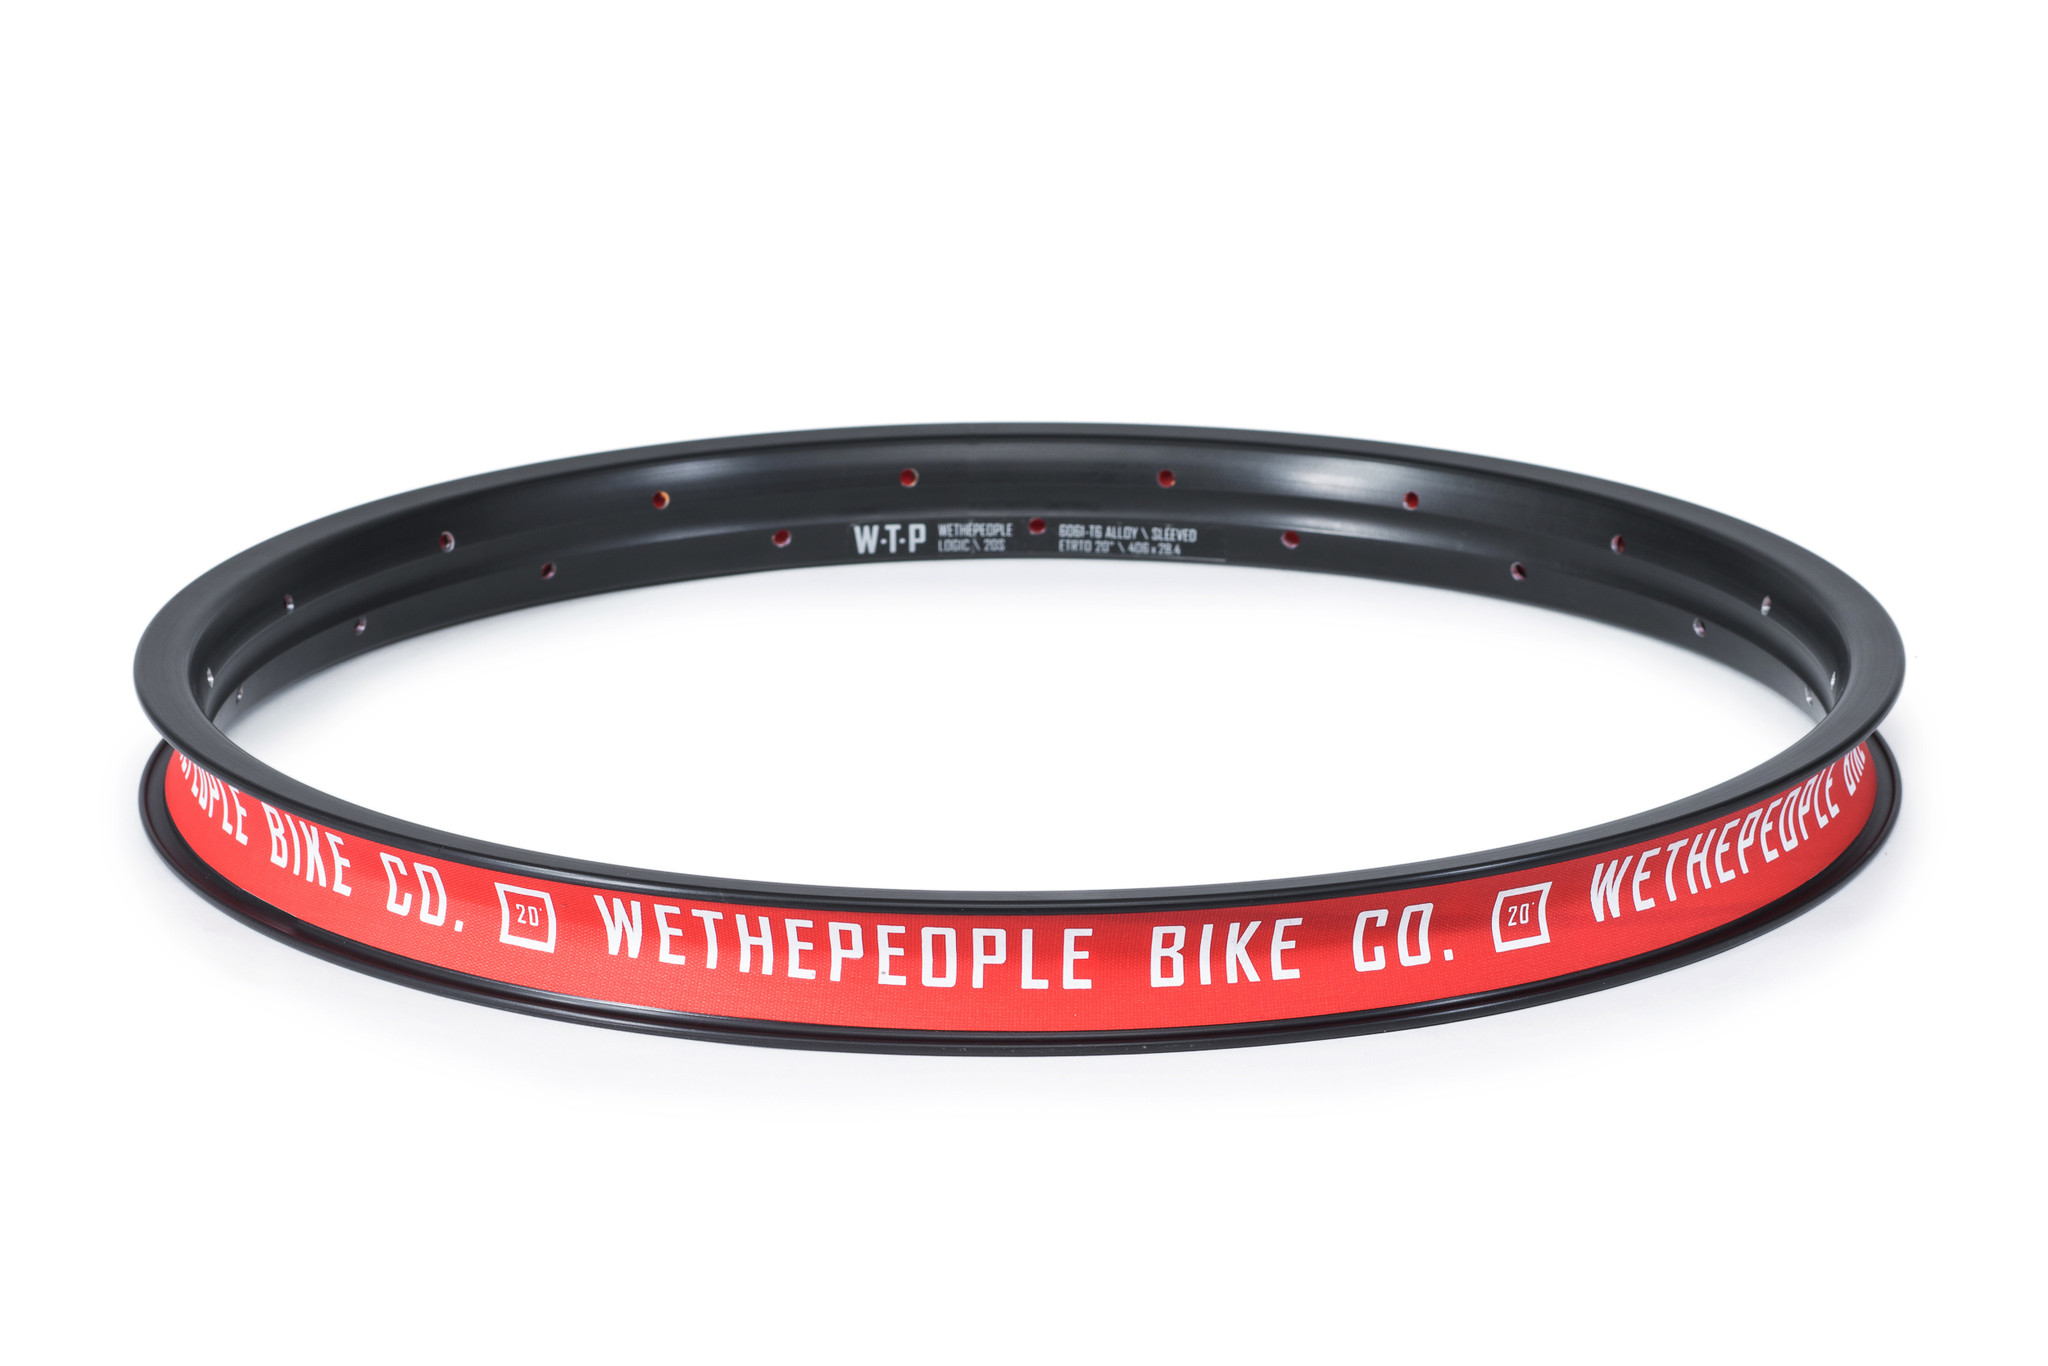 WETHEPEOPLE Logic Sleeved Rim